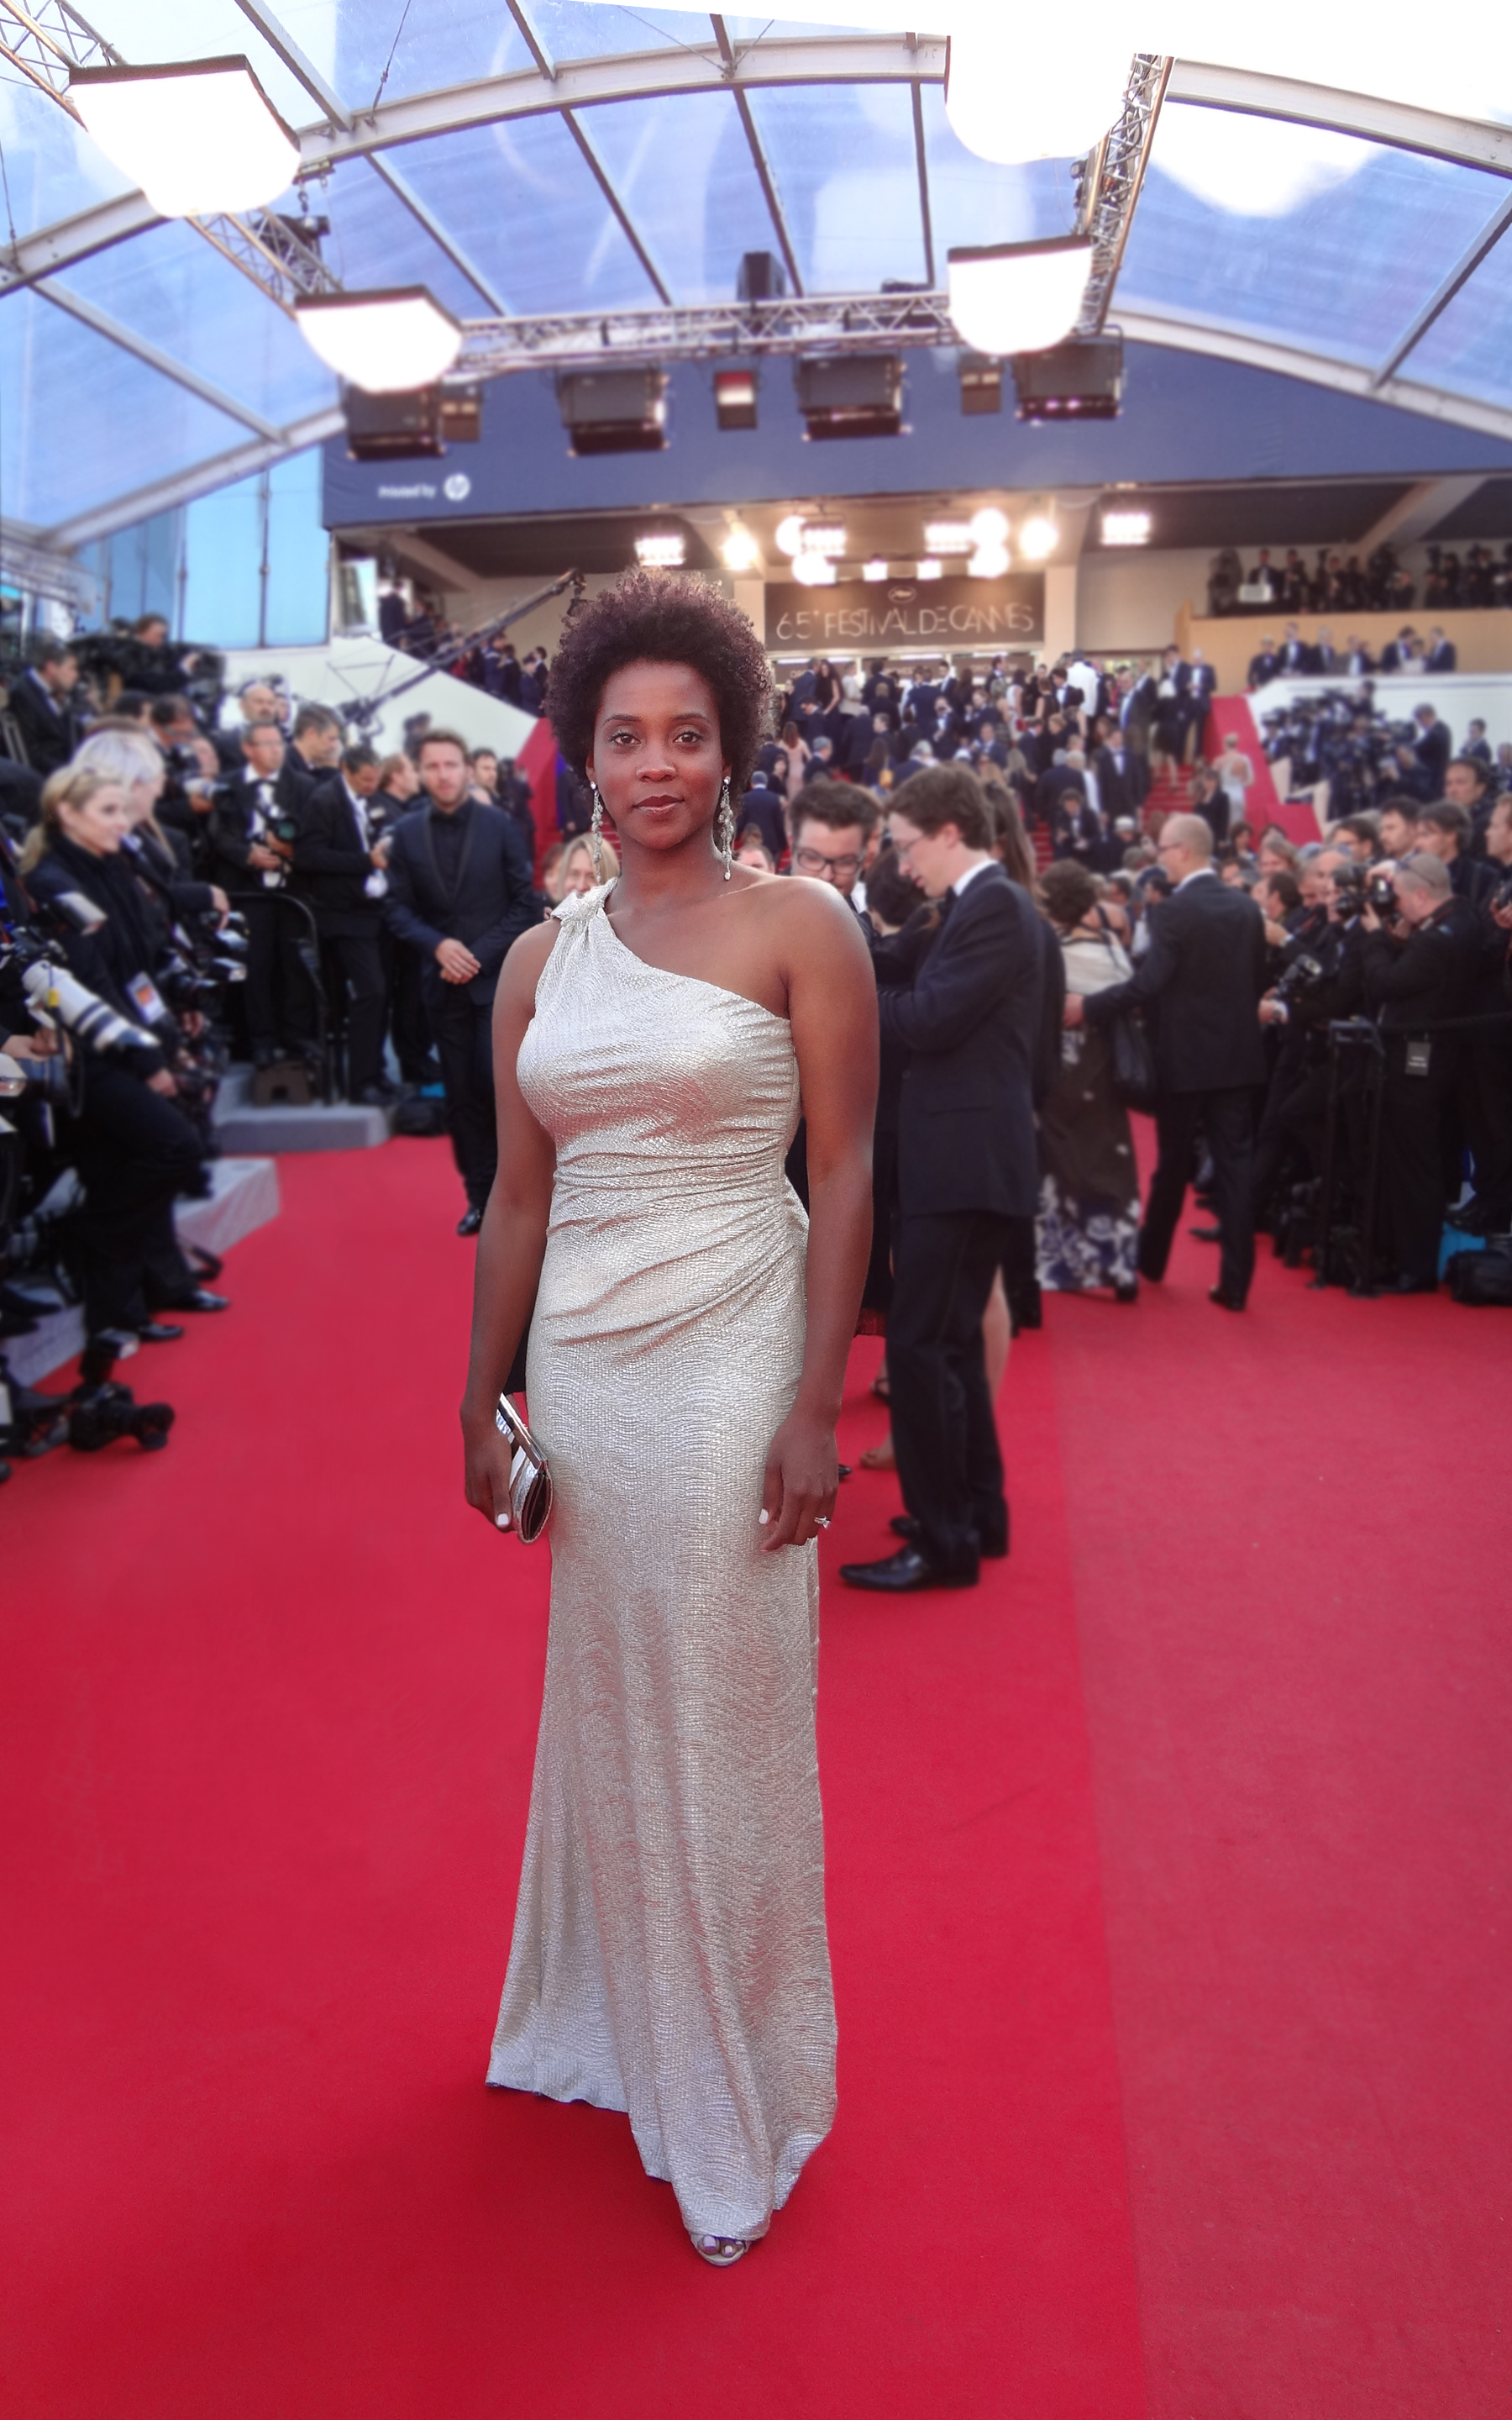 Linara Washington at Cannes Film Festival 2012